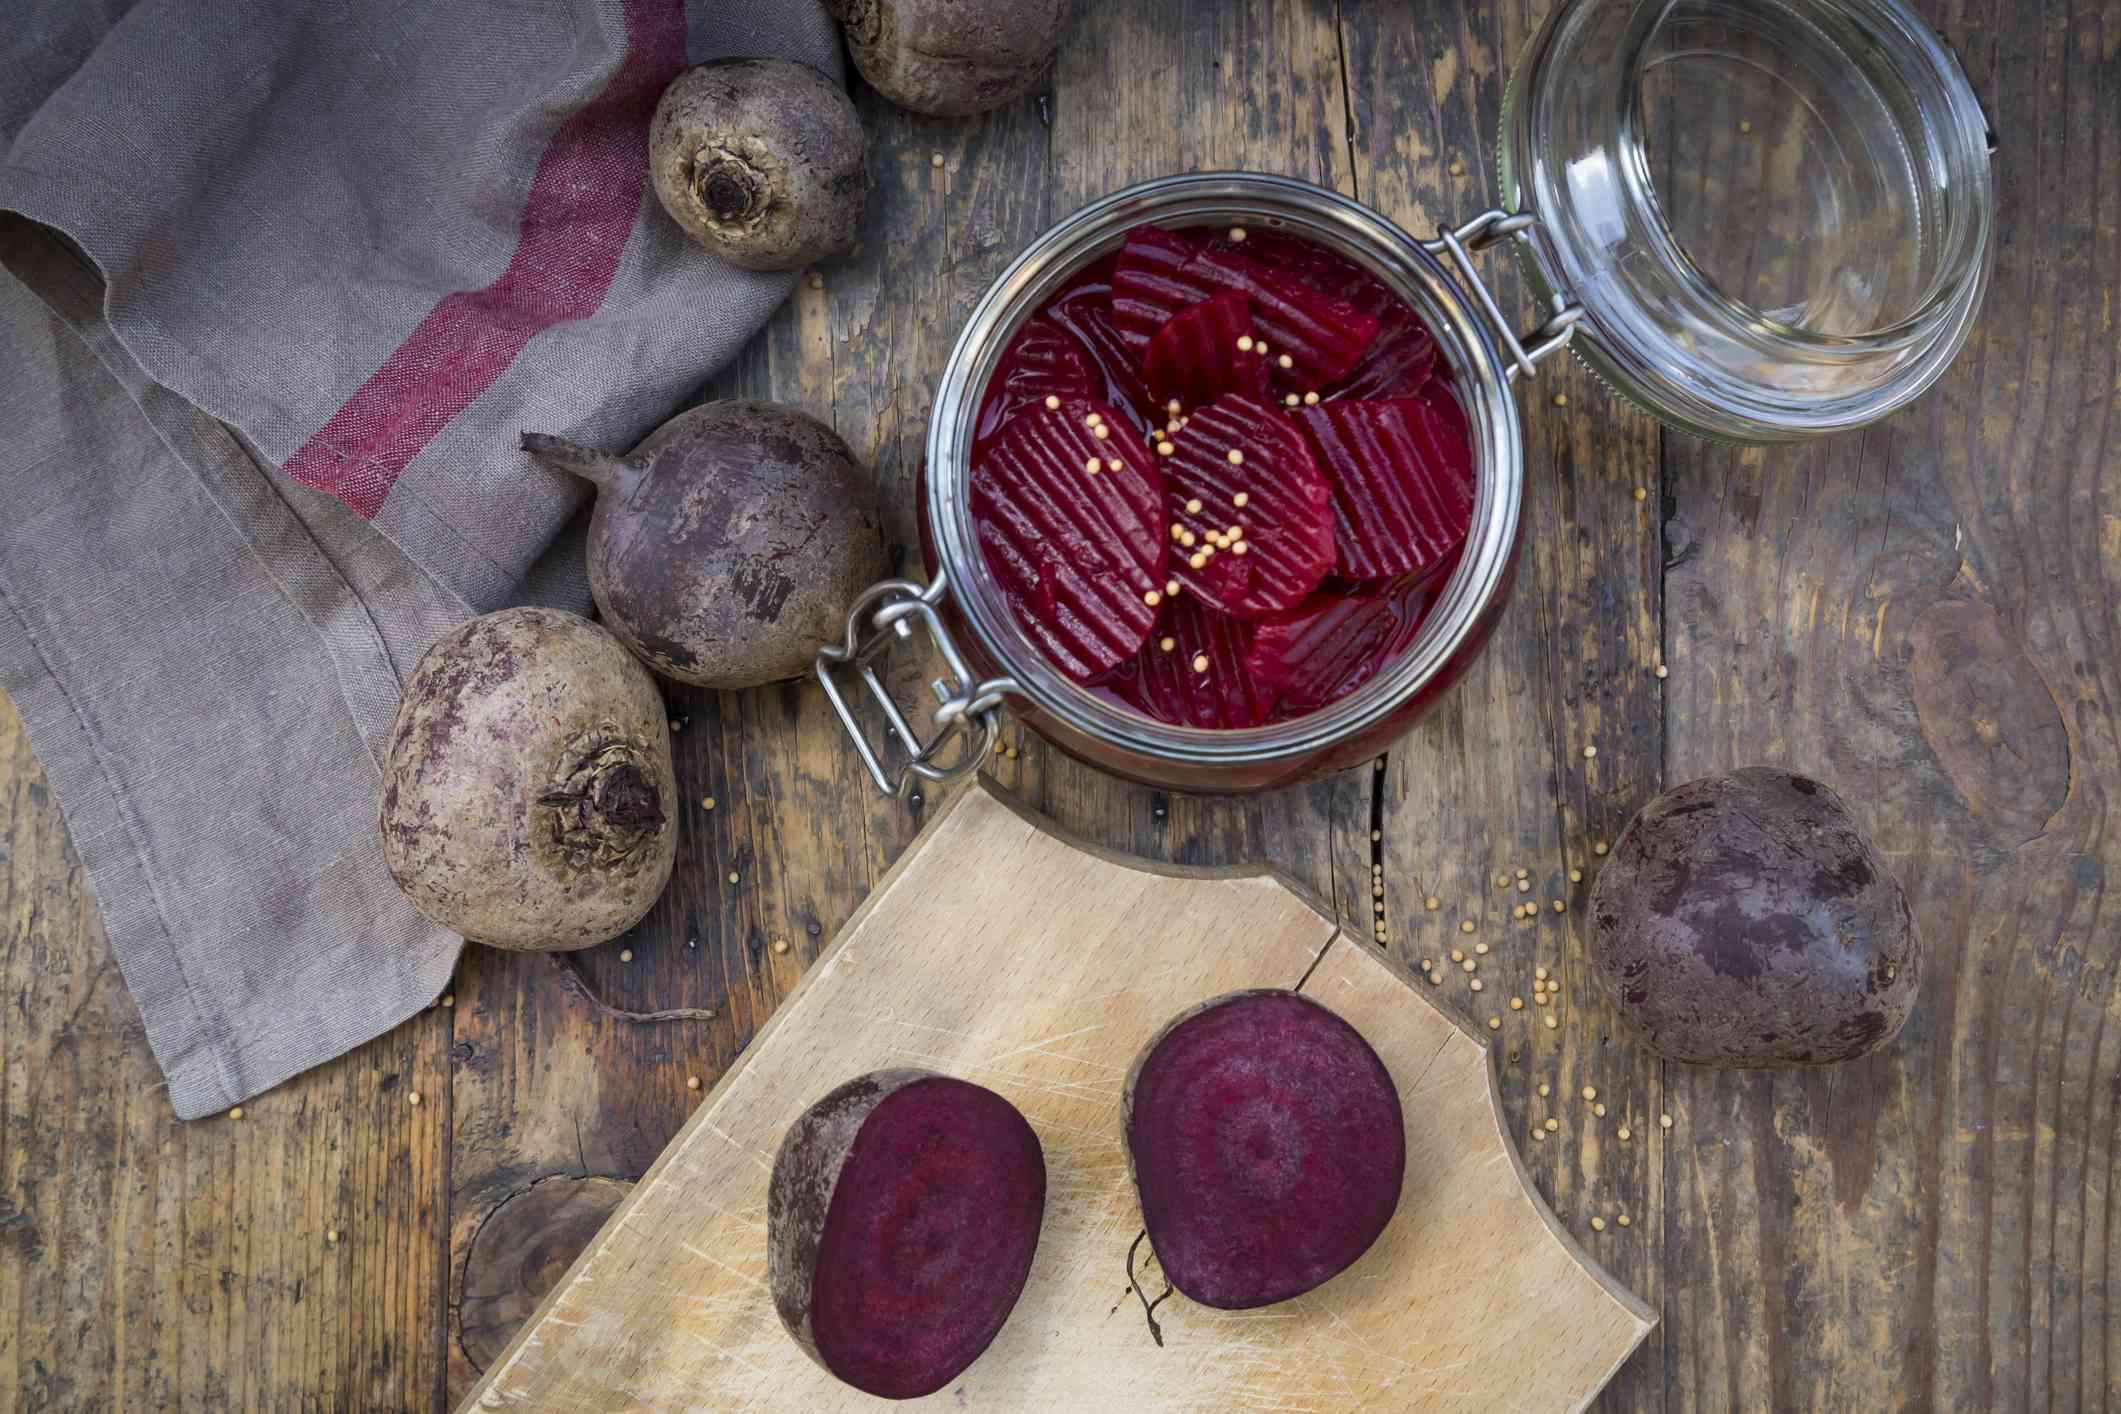 Preserving jar of pickled beetroots and whole and sliced beetroots on wood